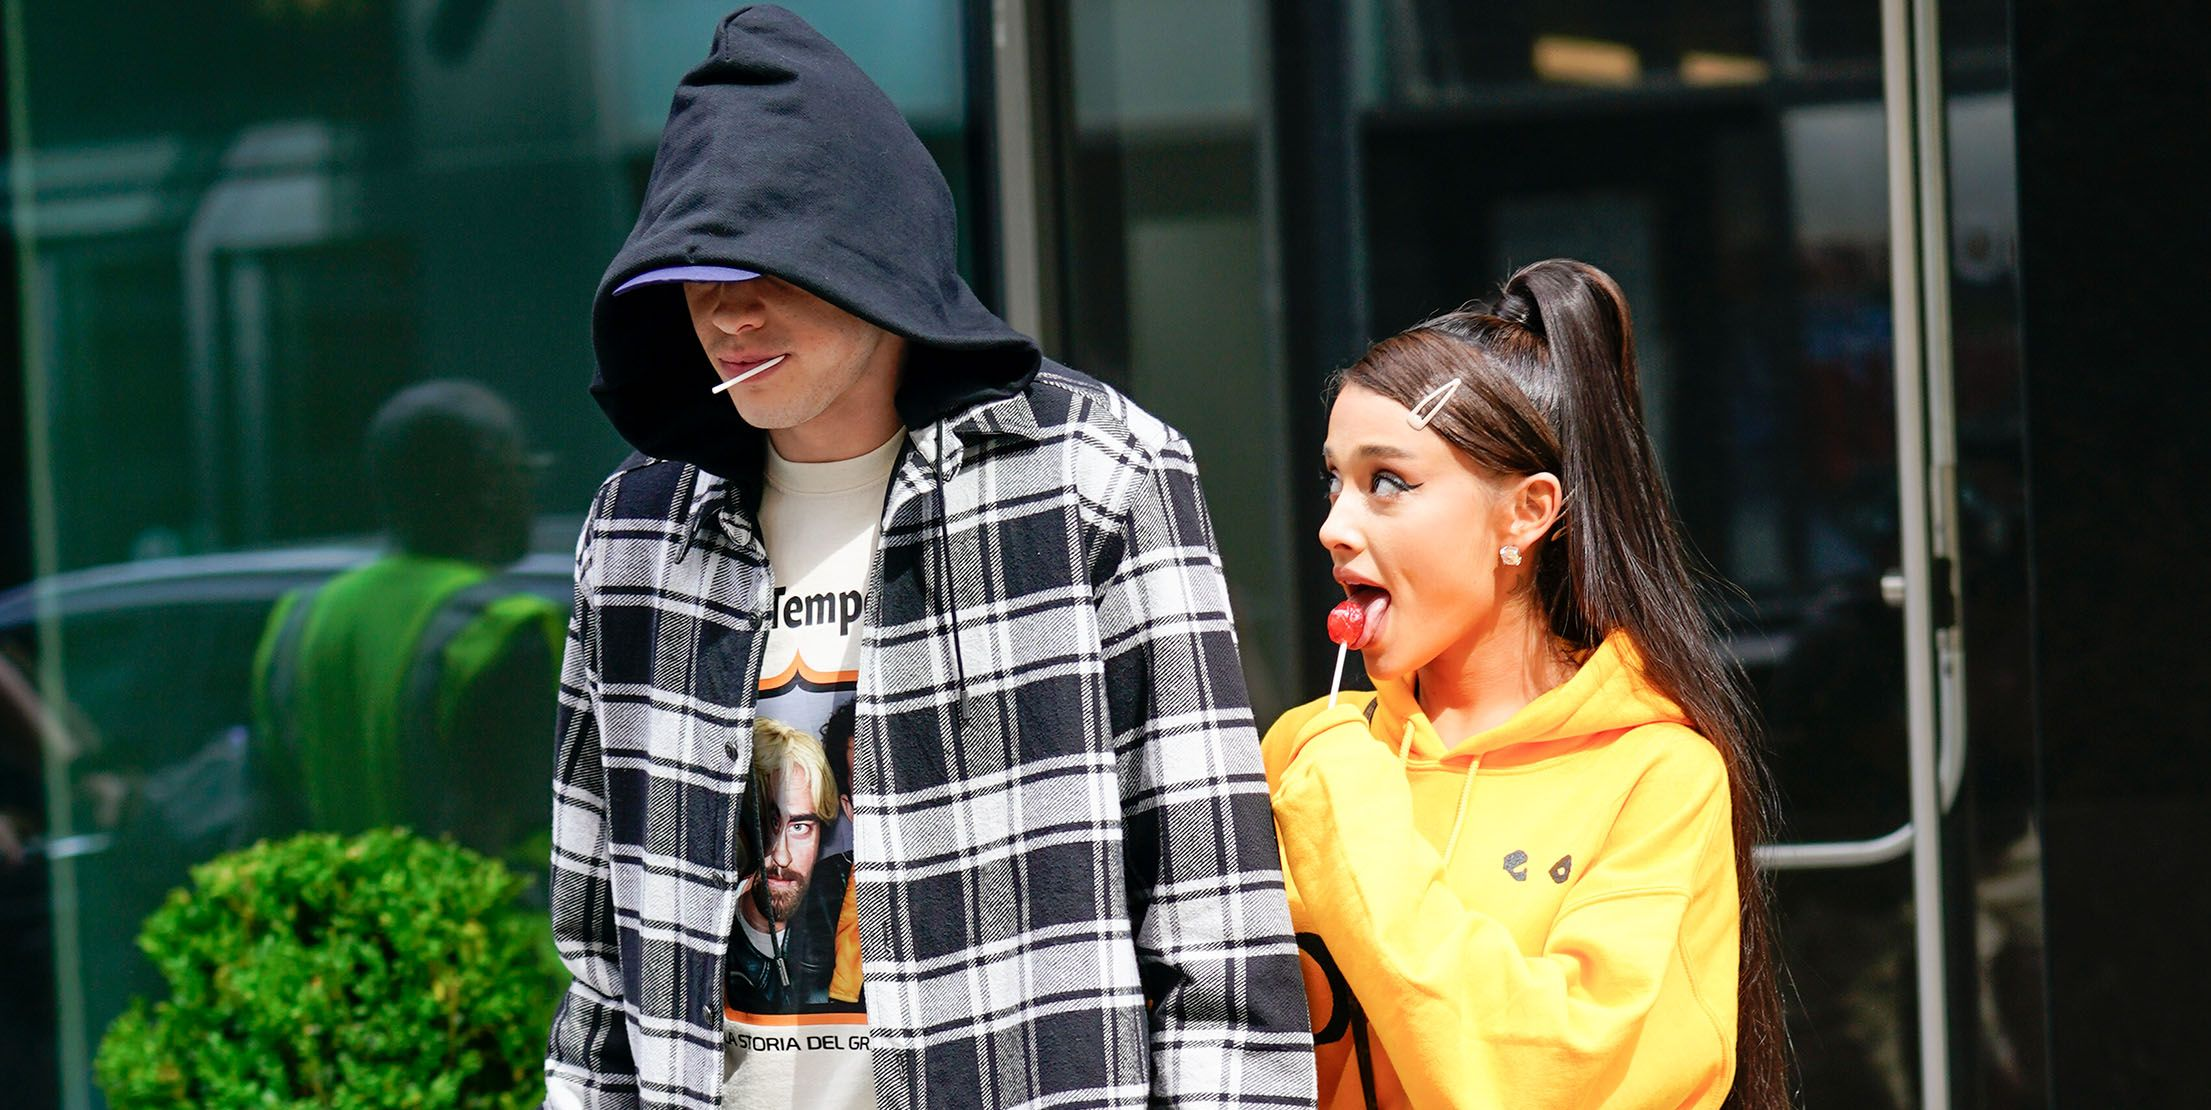 """UM, Pete Davidson Just Savagely Put the Word """"Cursed"""" Over an Ariana Grande Tattoo"""